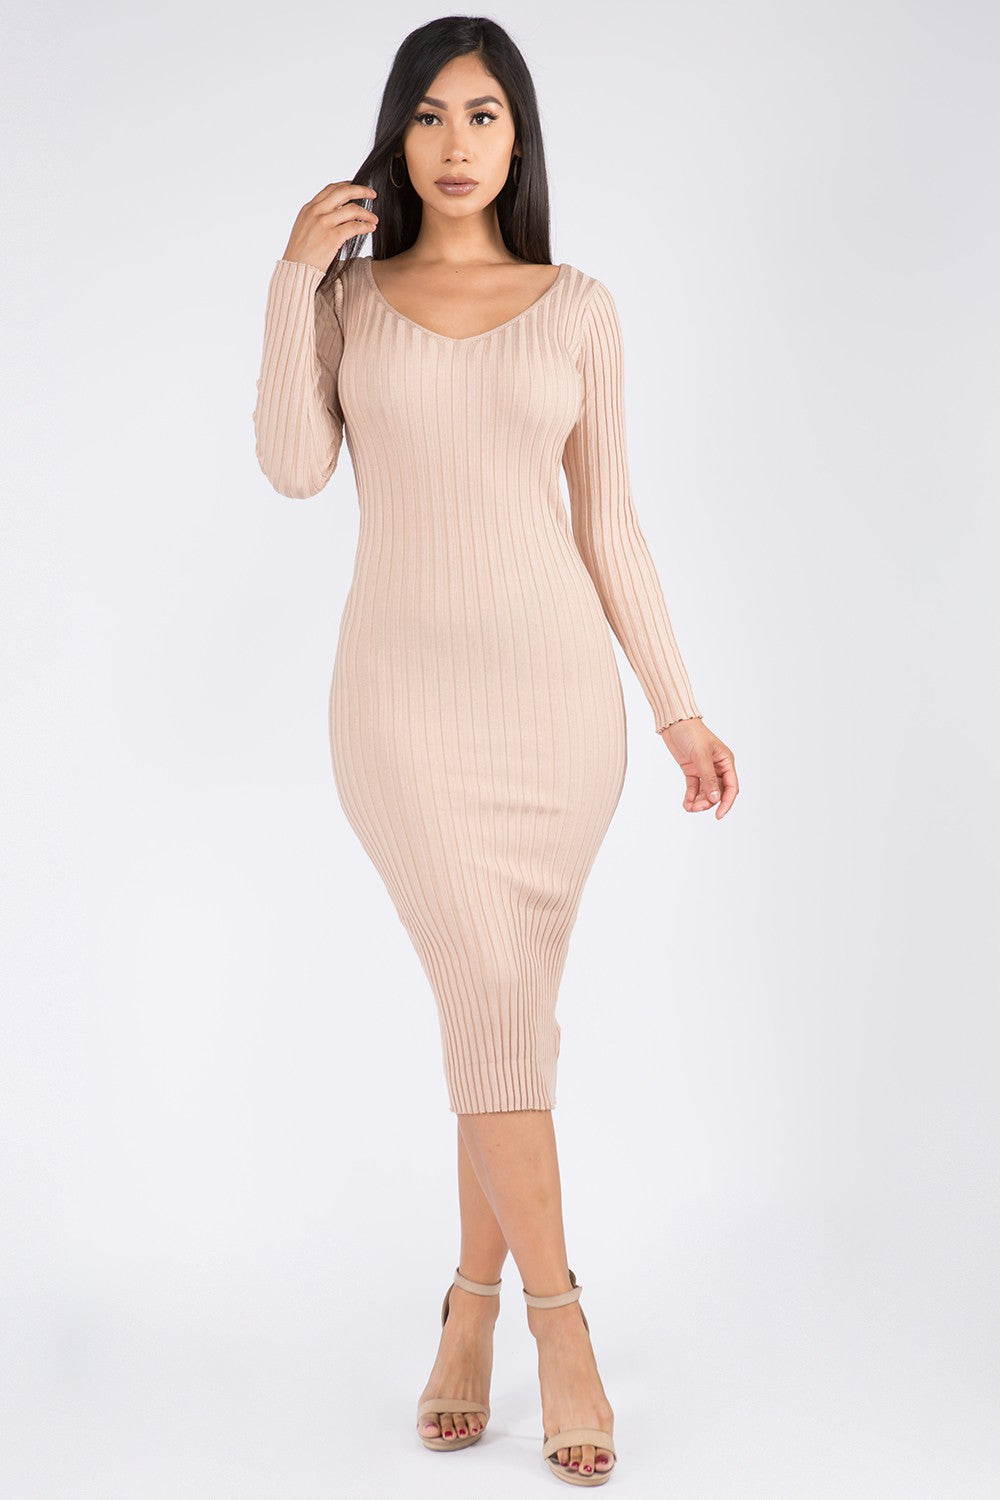 The Leann Dress (Nude)